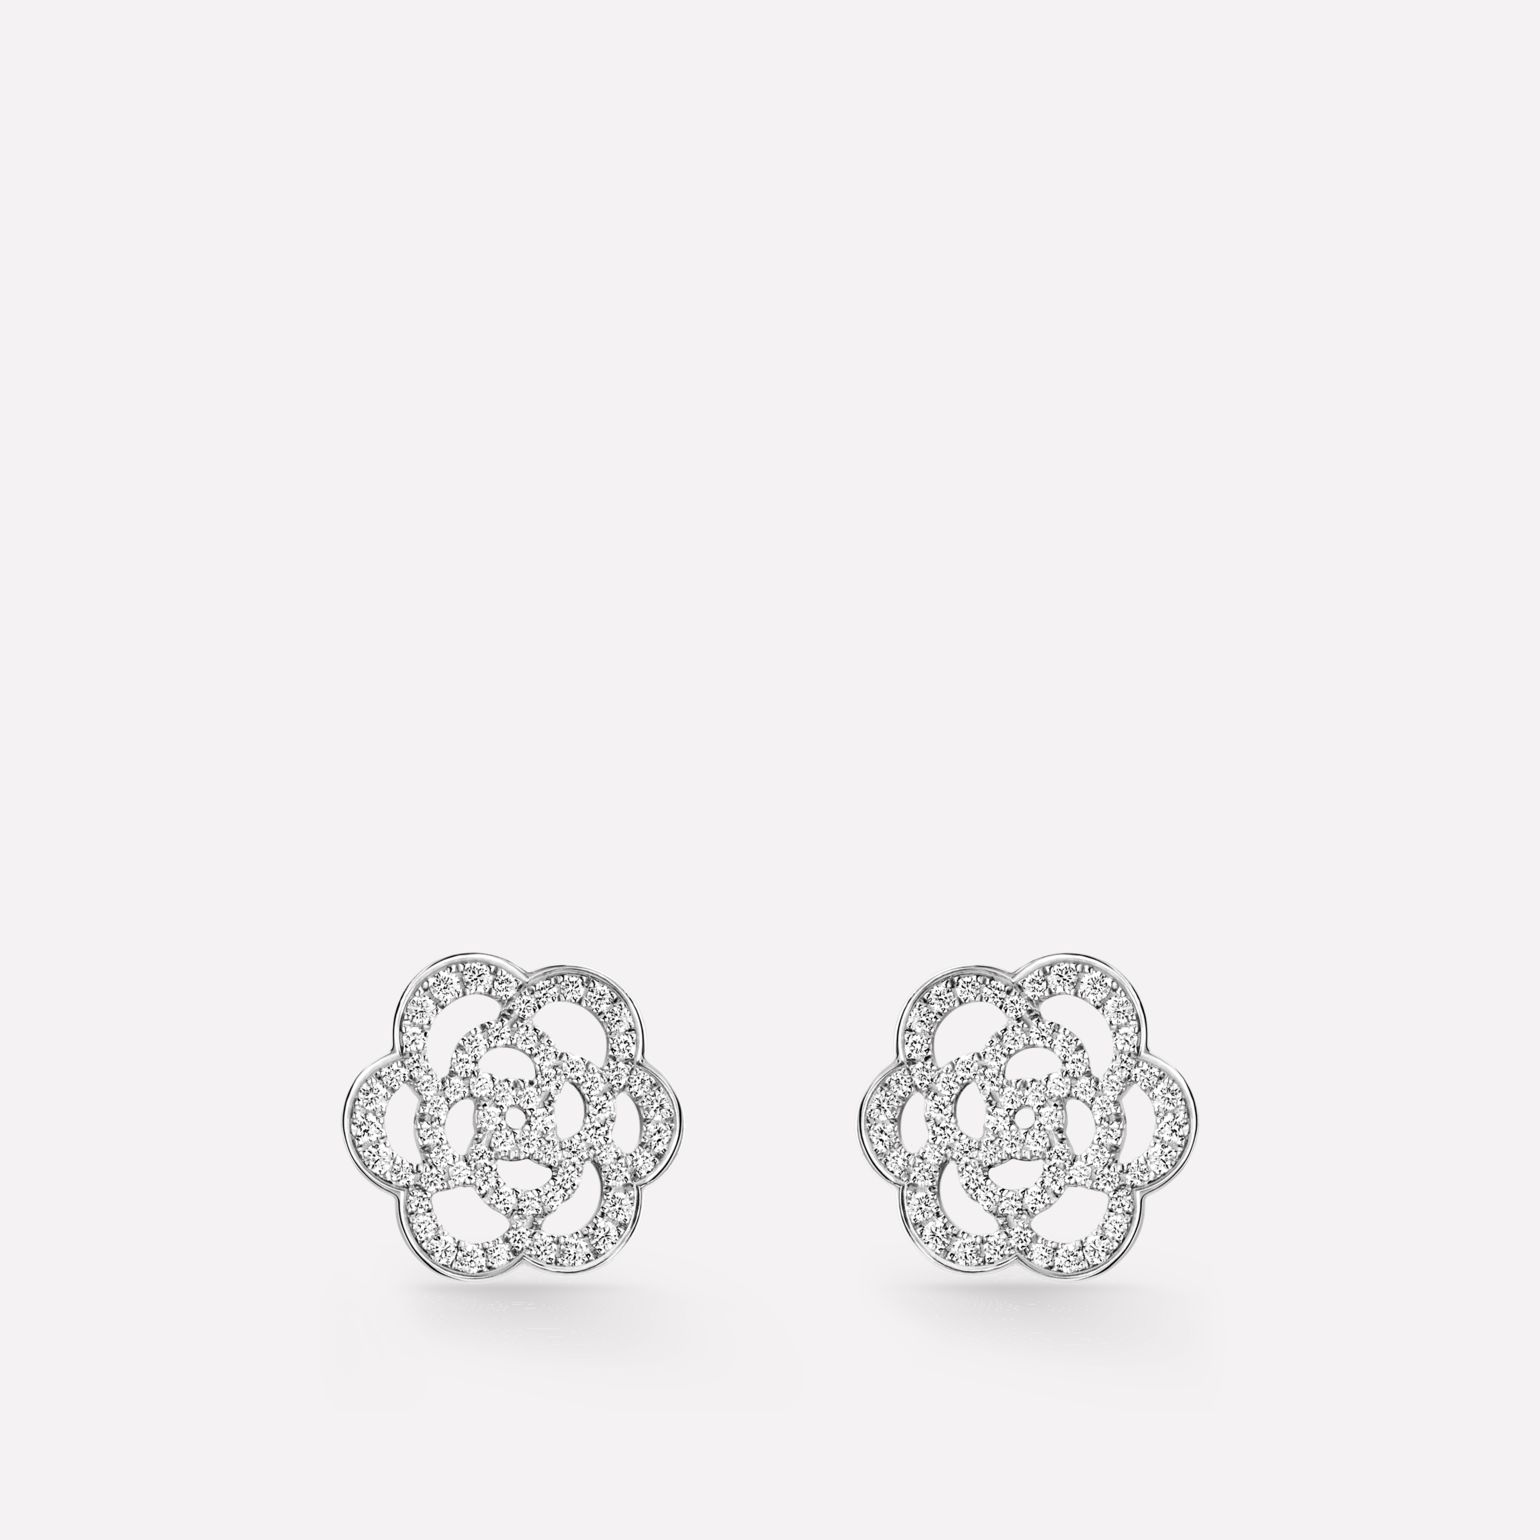 Camélia earrings Camélia Ajouré earrings, in 18K white gold and diamonds